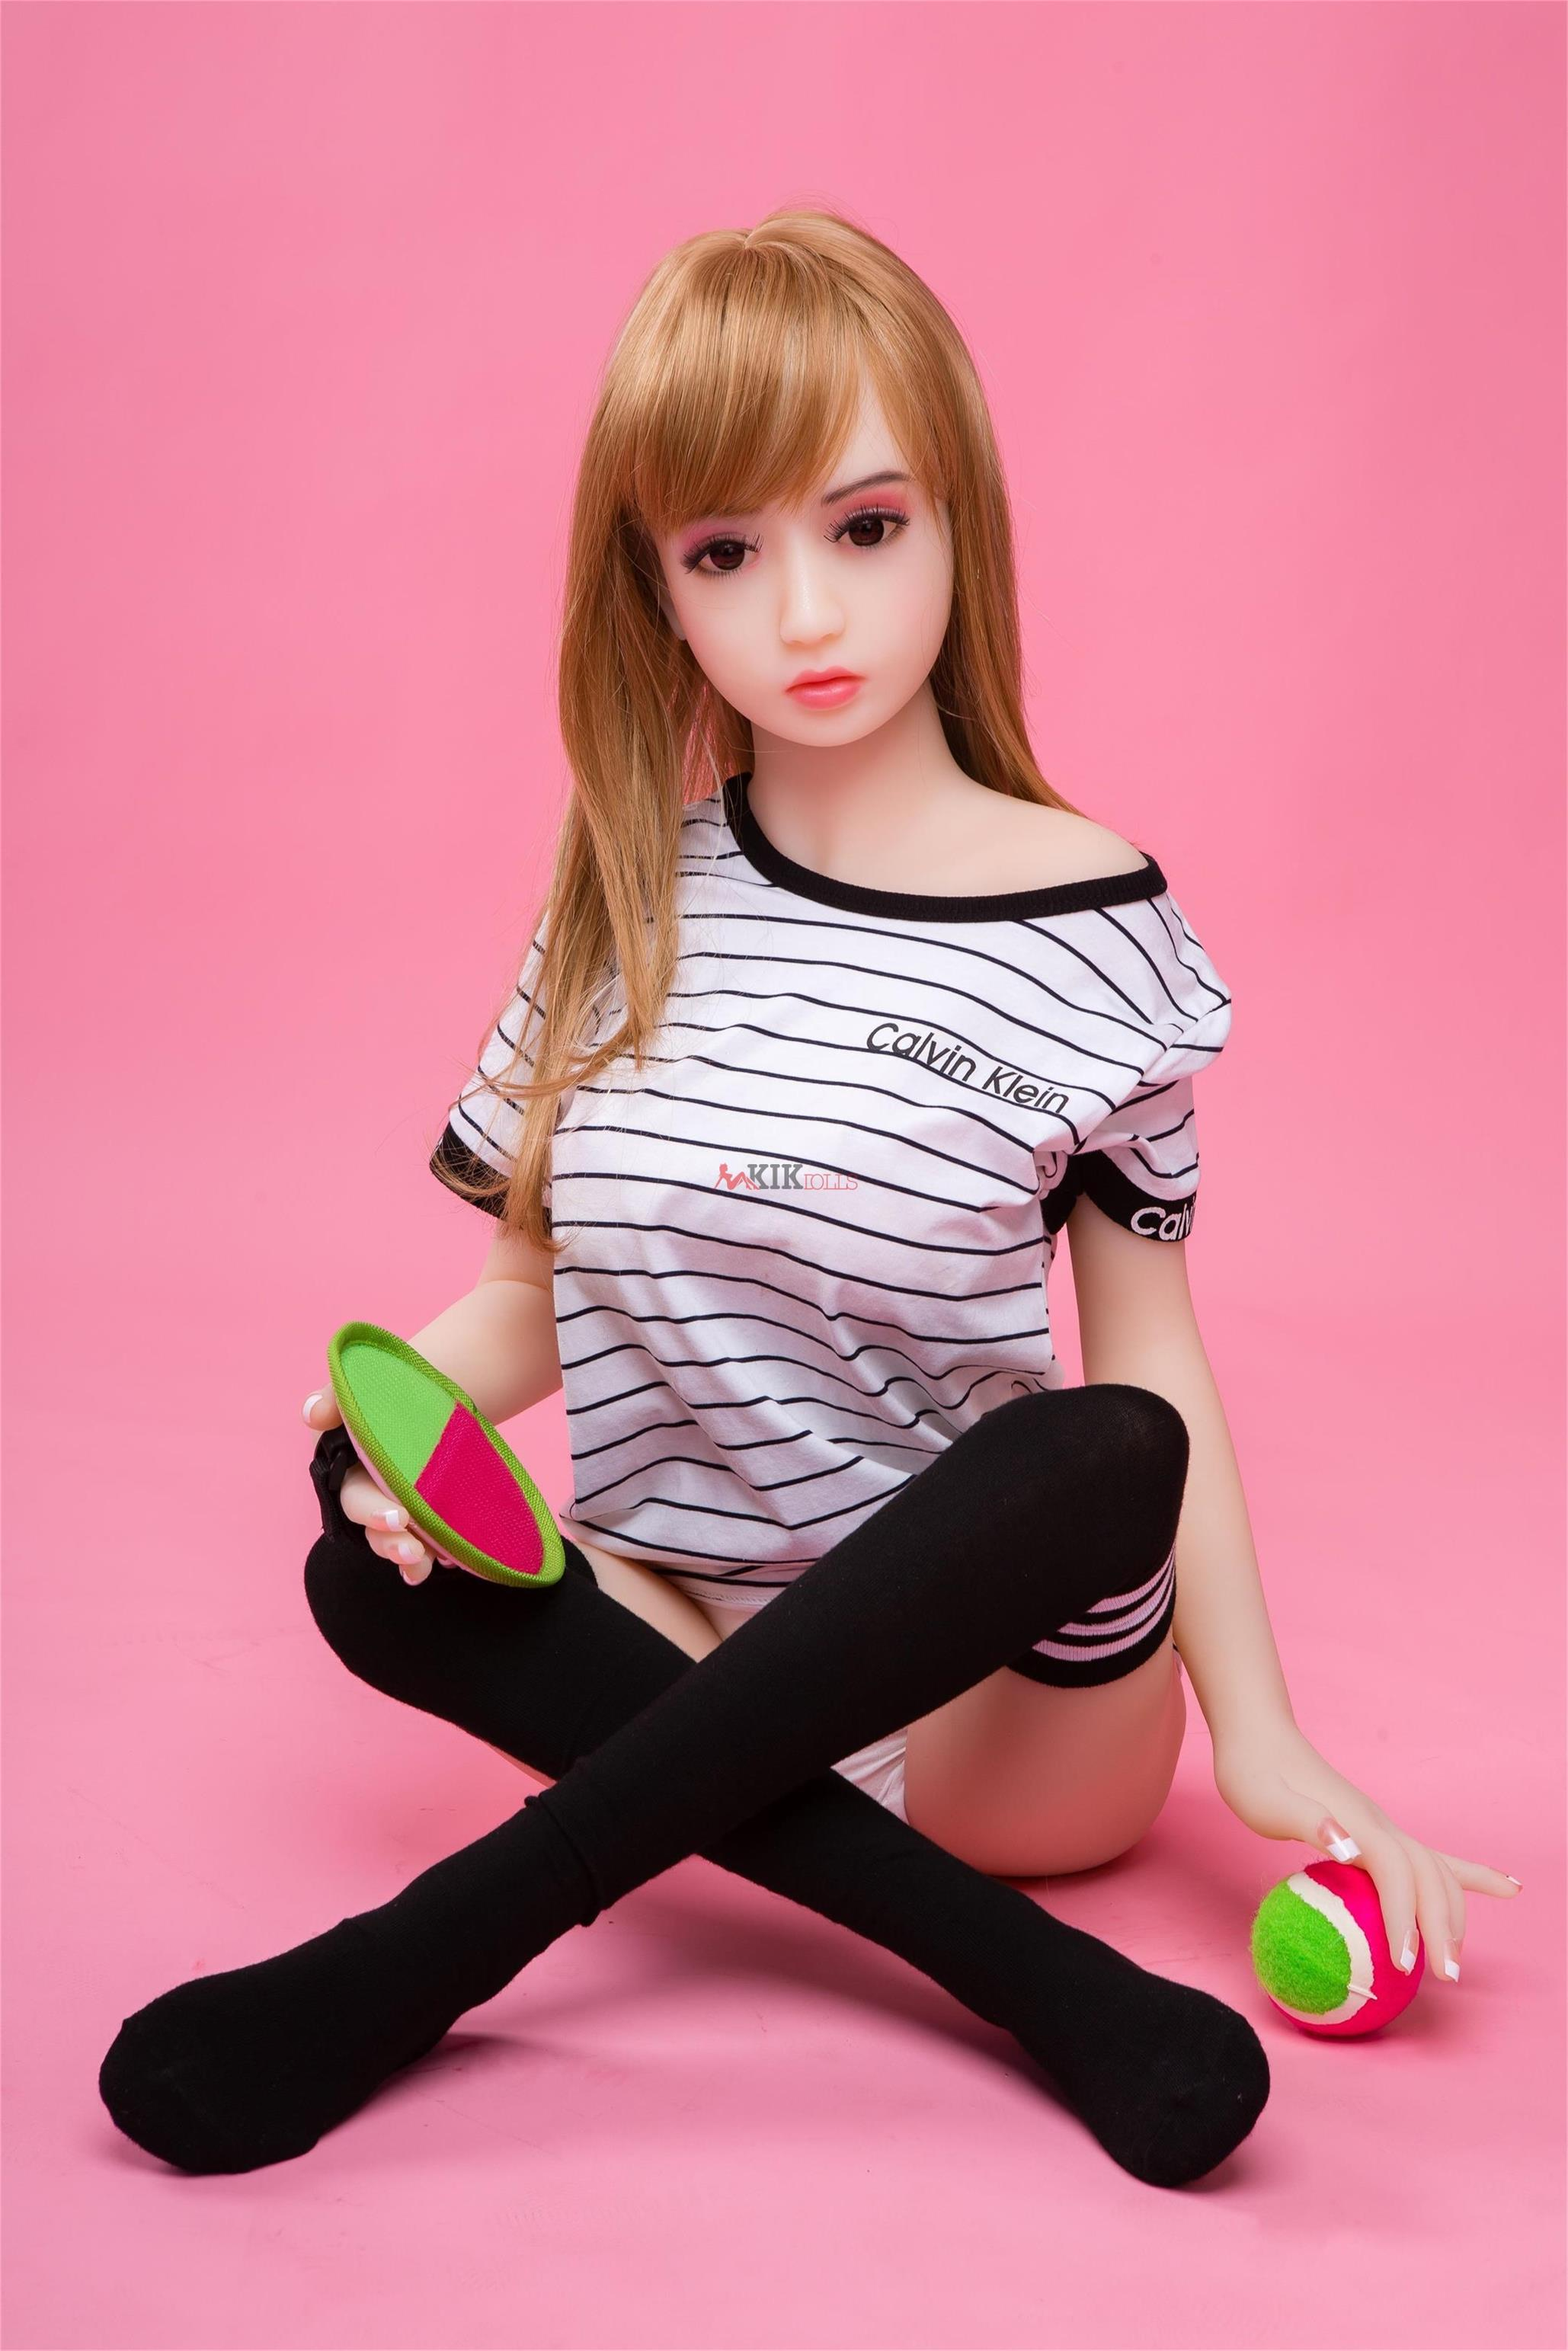 125cm lifelike silicone sex doll for men Amy